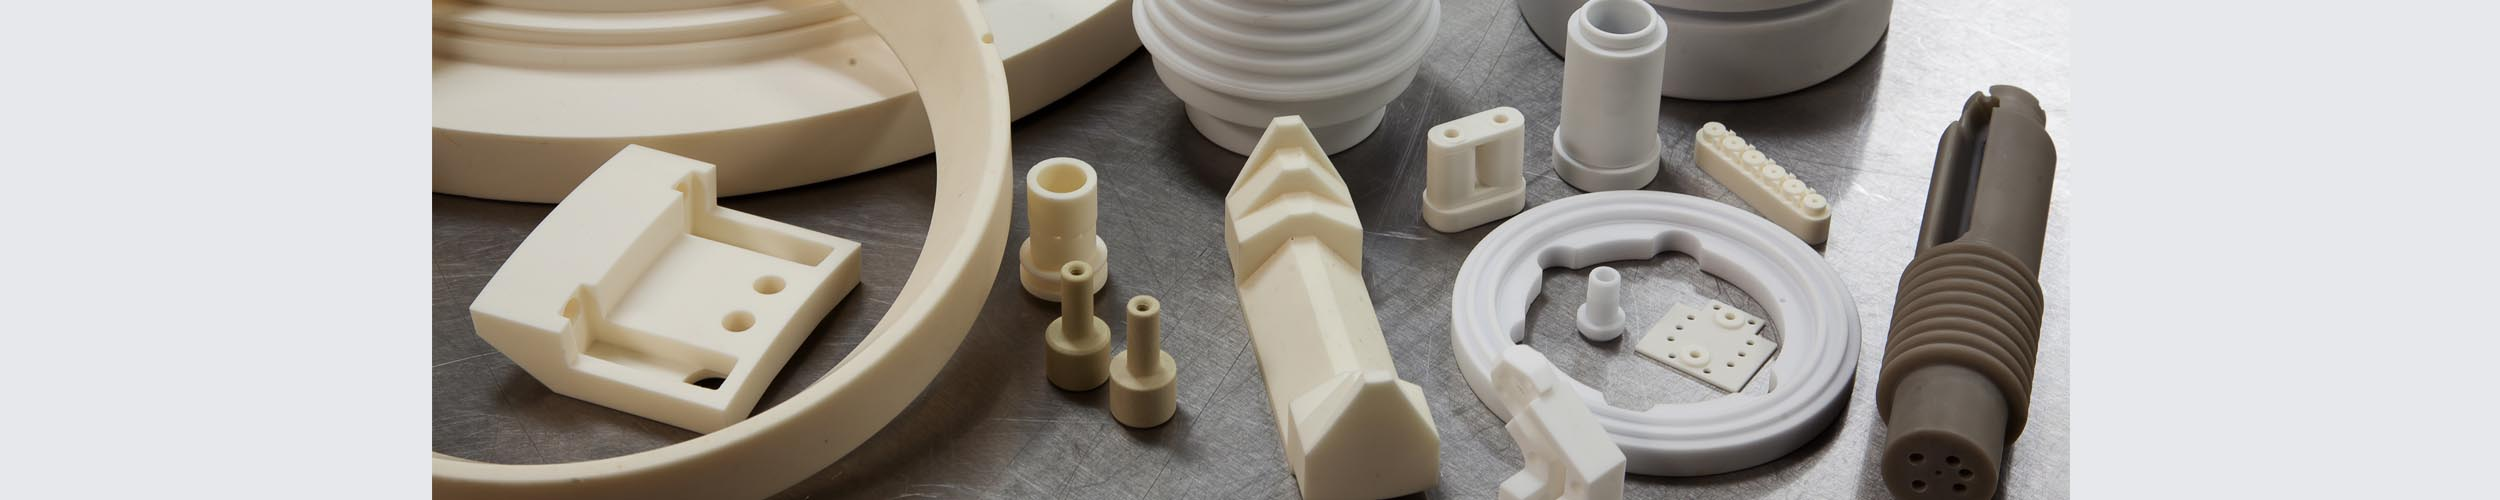 ceramic-products-background-2